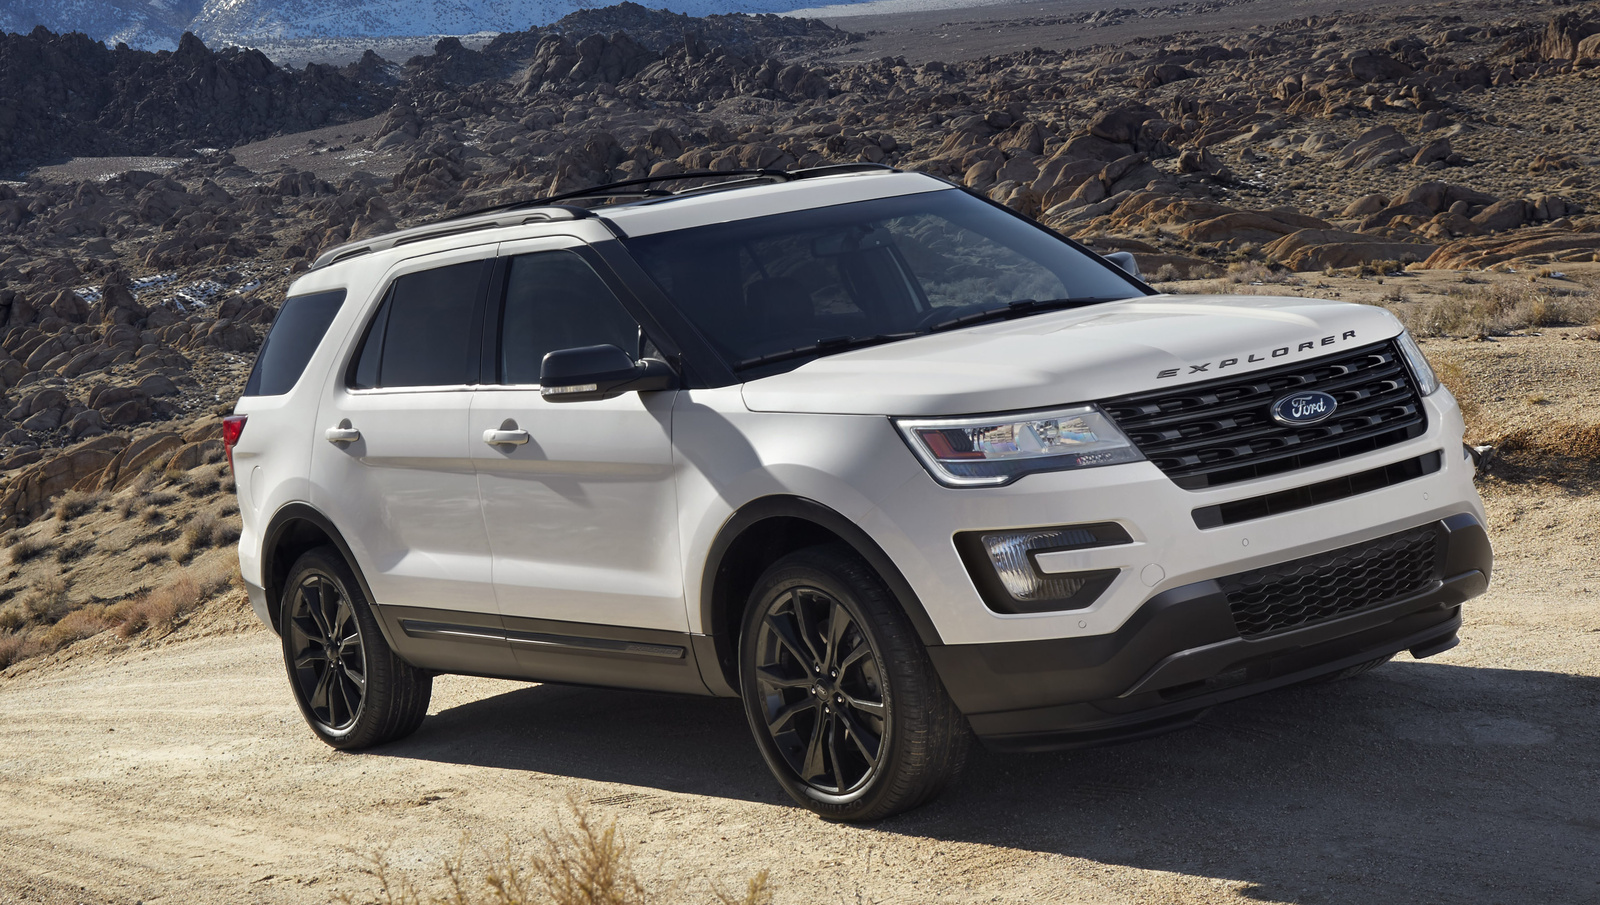 filter results listings 2014 ford explorer xlt review - New 2015 Ford Explorer Black Color